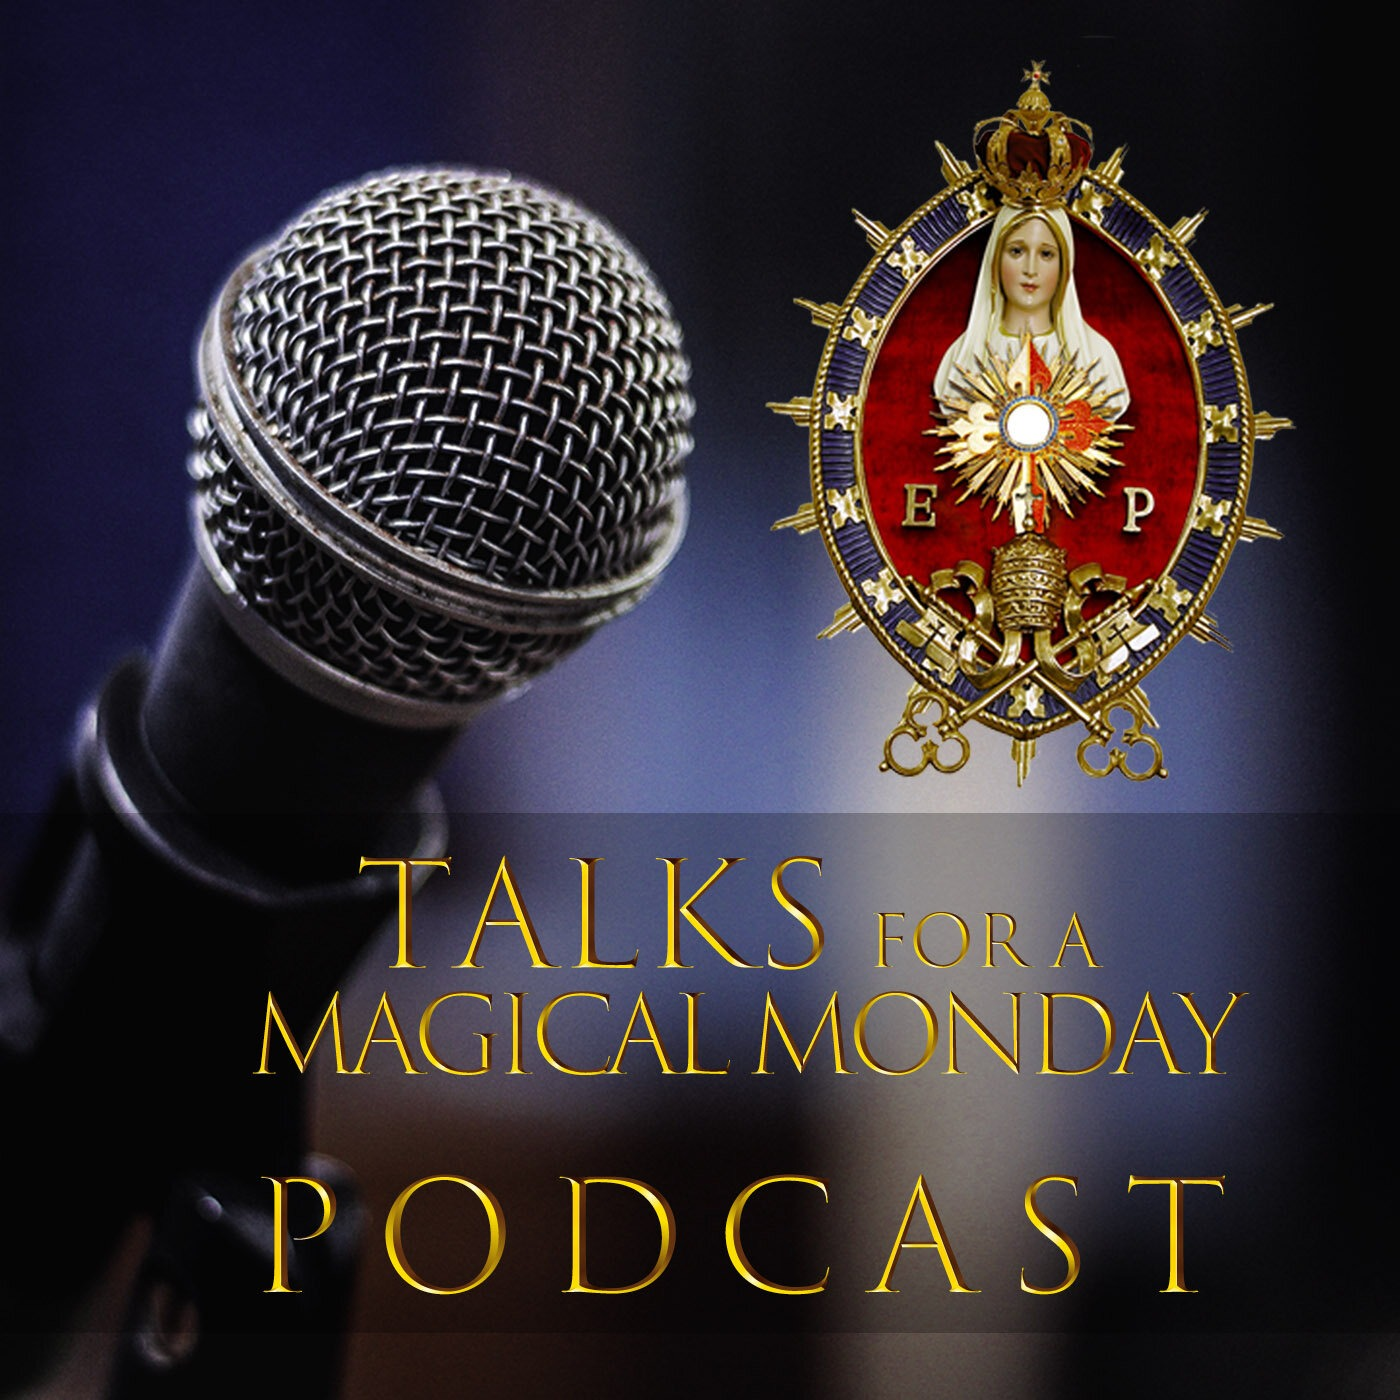 Talks for a Magical Monday